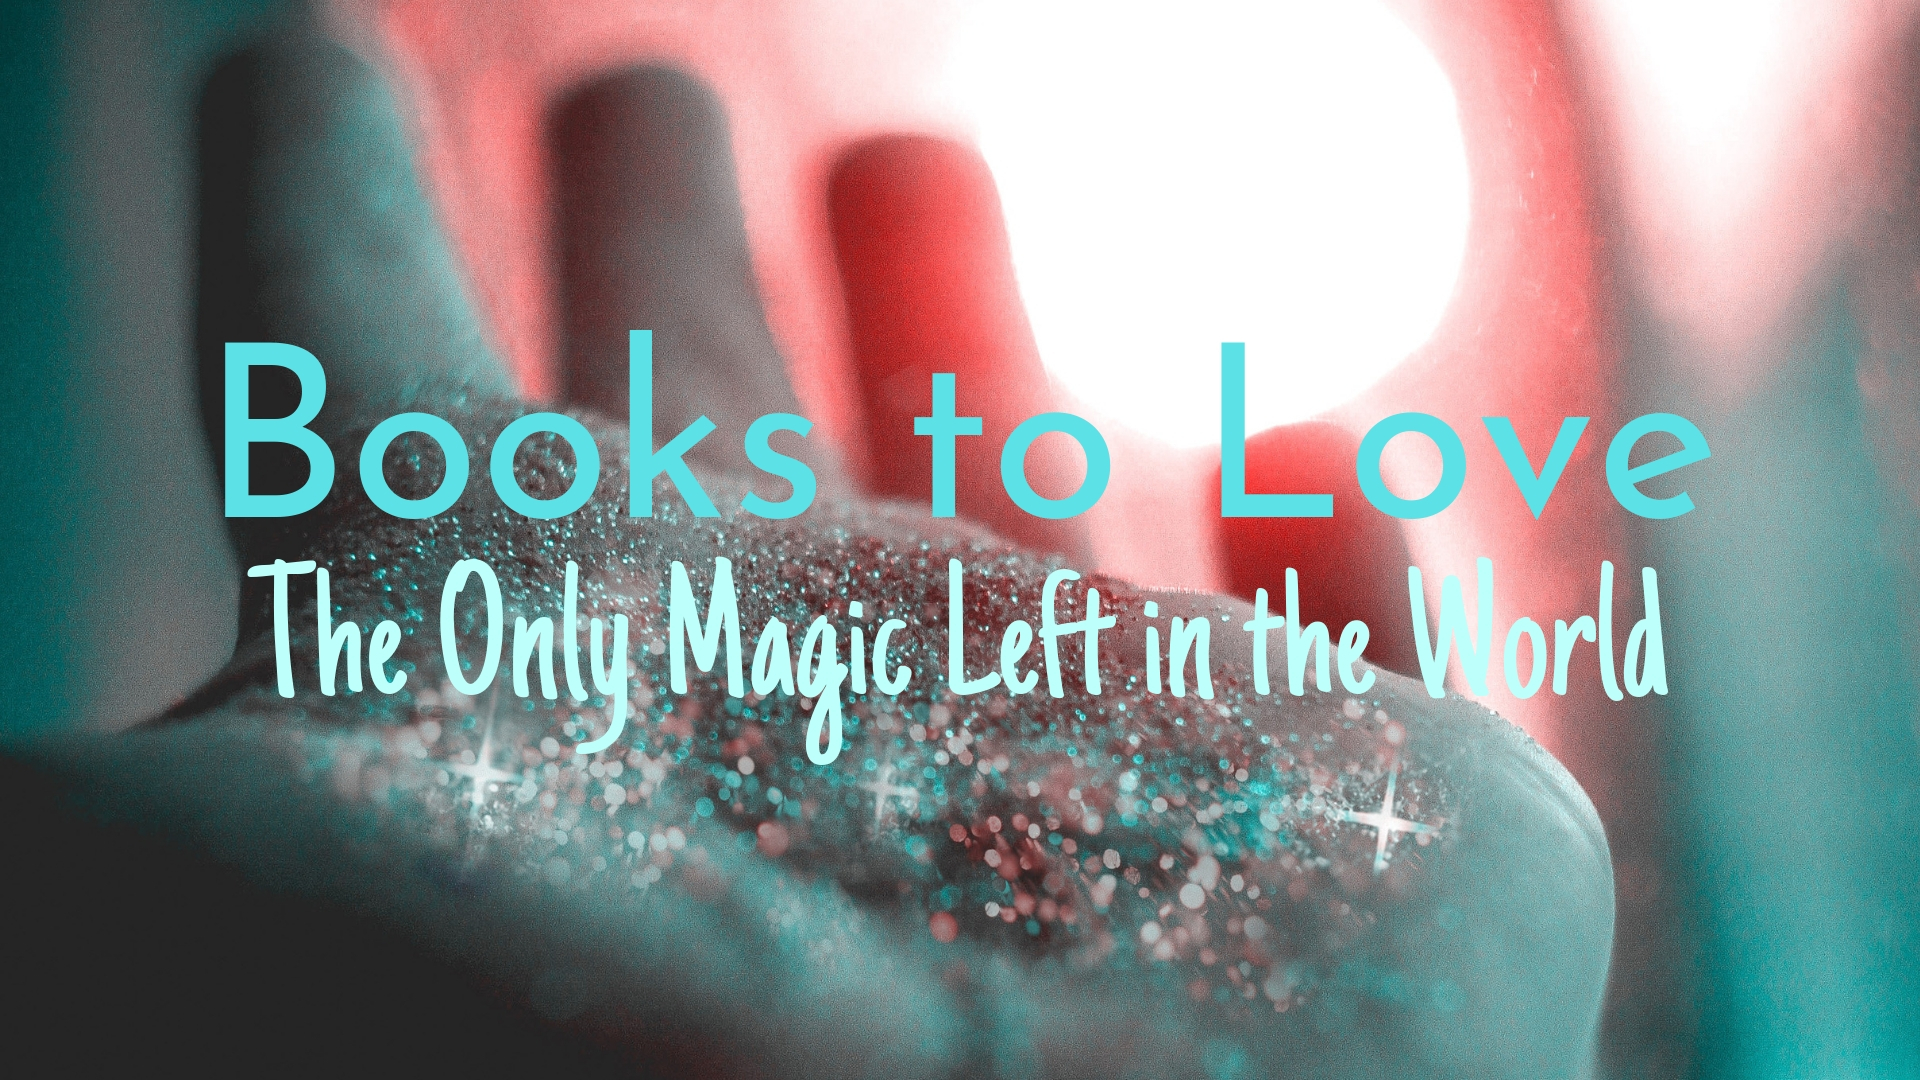 banner-books-to-love-the-only-magic-left-in-the-world-01.jpg